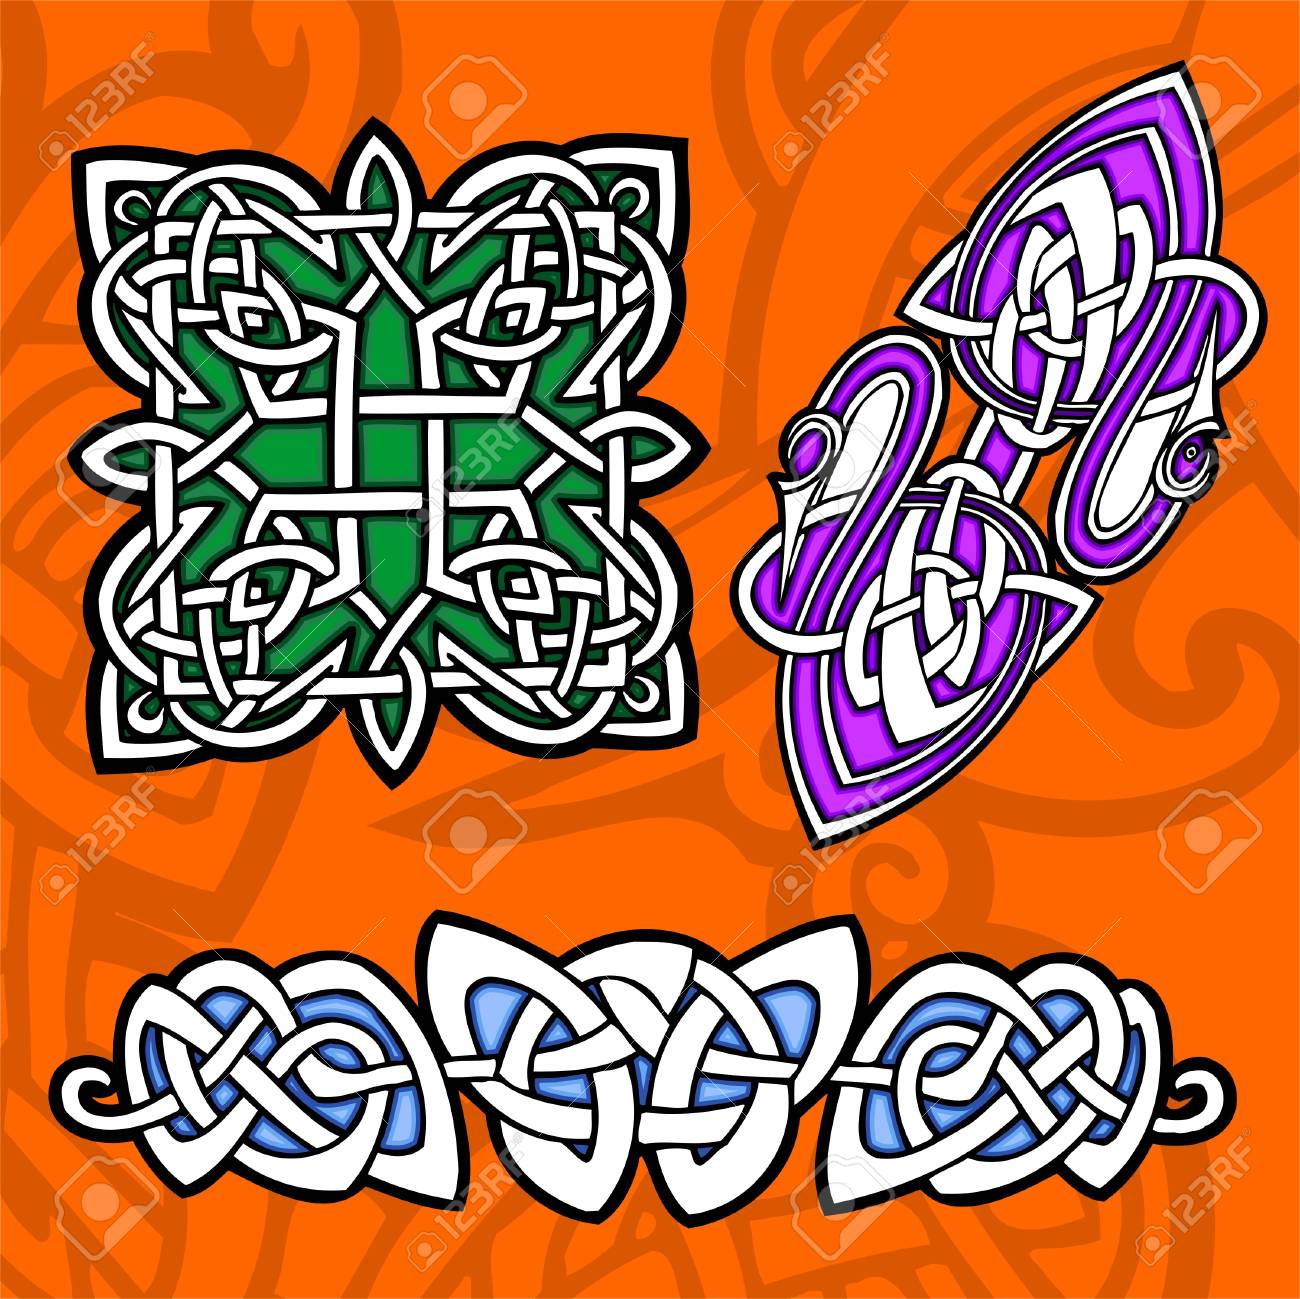 Celtic ornamental design.  Illustration. Vinyl-Ready. Stock Vector - 8268902